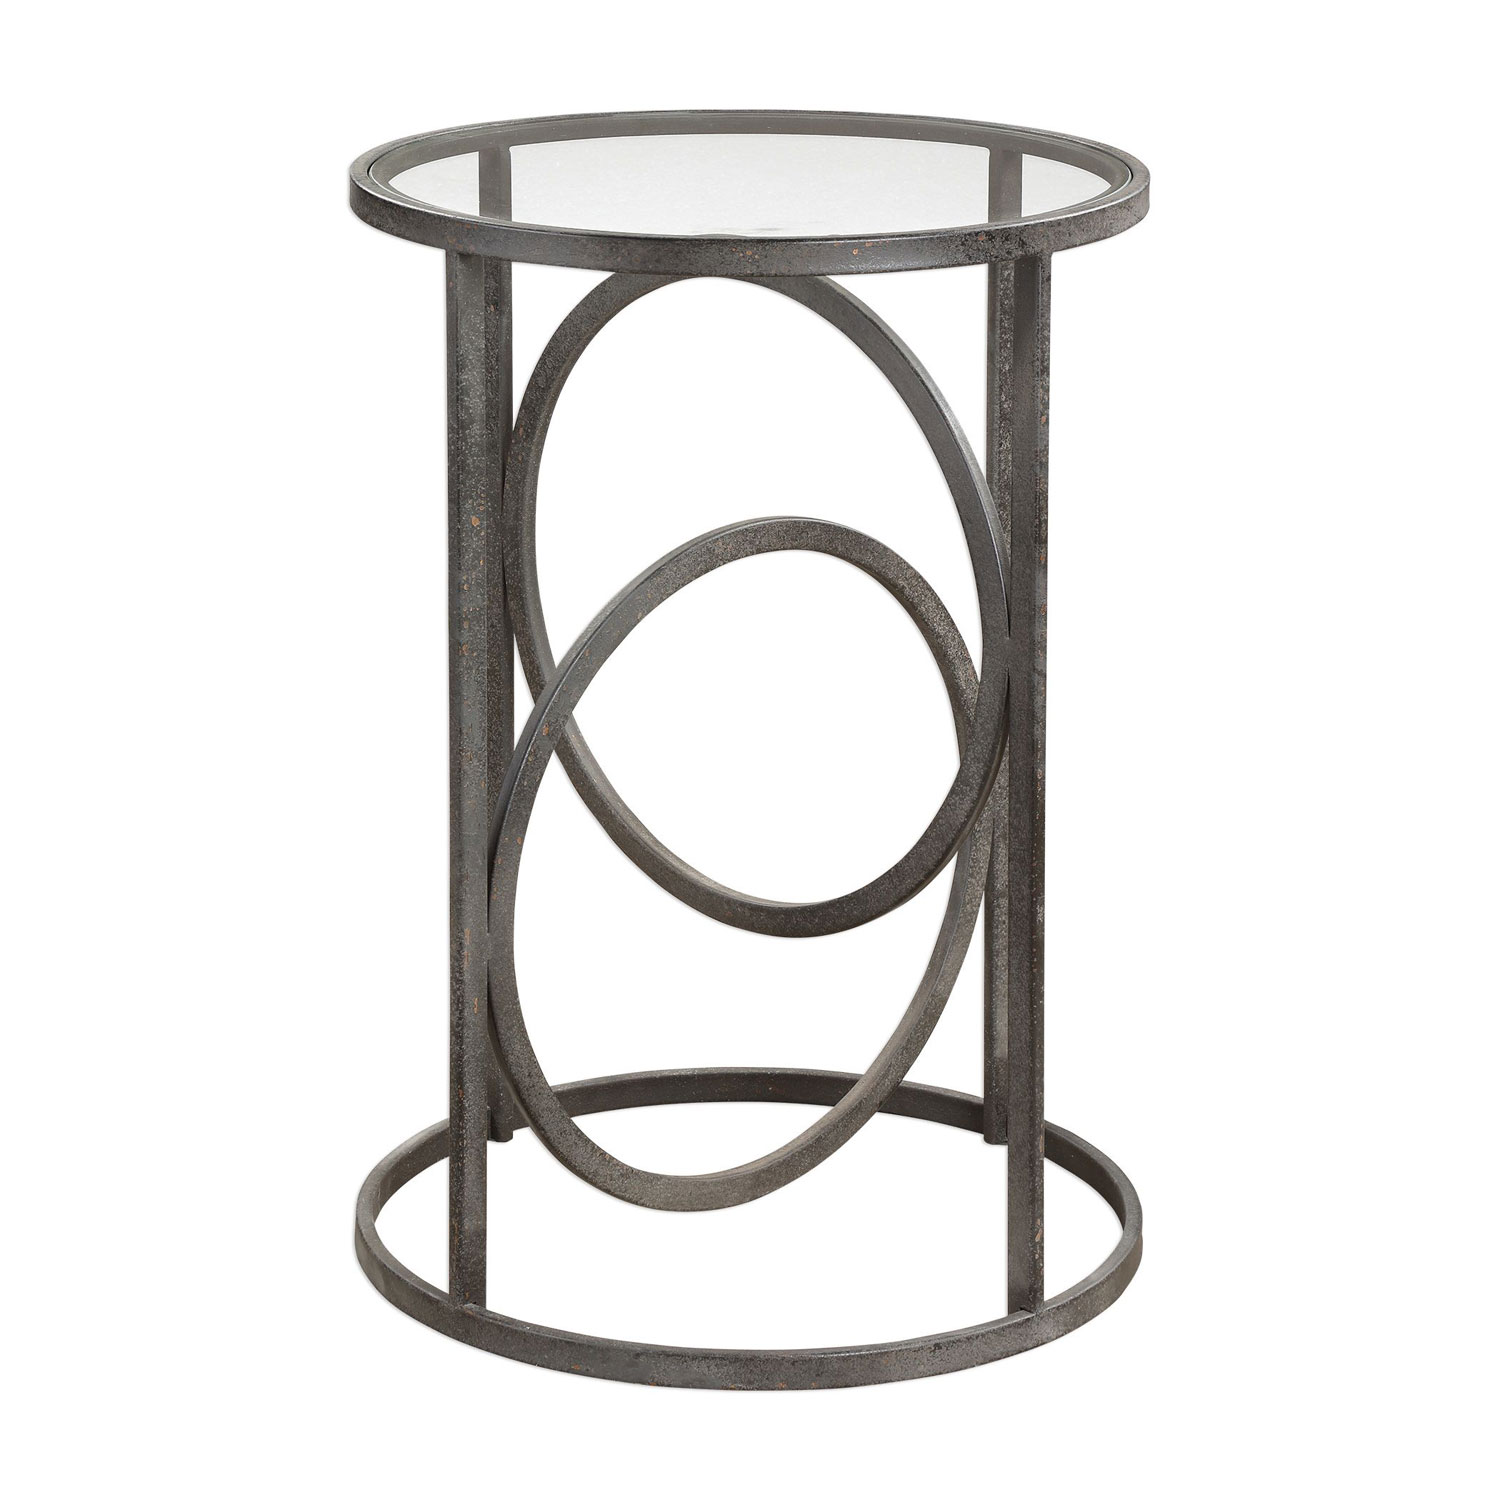 uttermost lucien iron accent table bellacor outdoor metal hover zoom rustic furniture seat covers cream bedside tables off white coffee rattan chairs battery powered light small